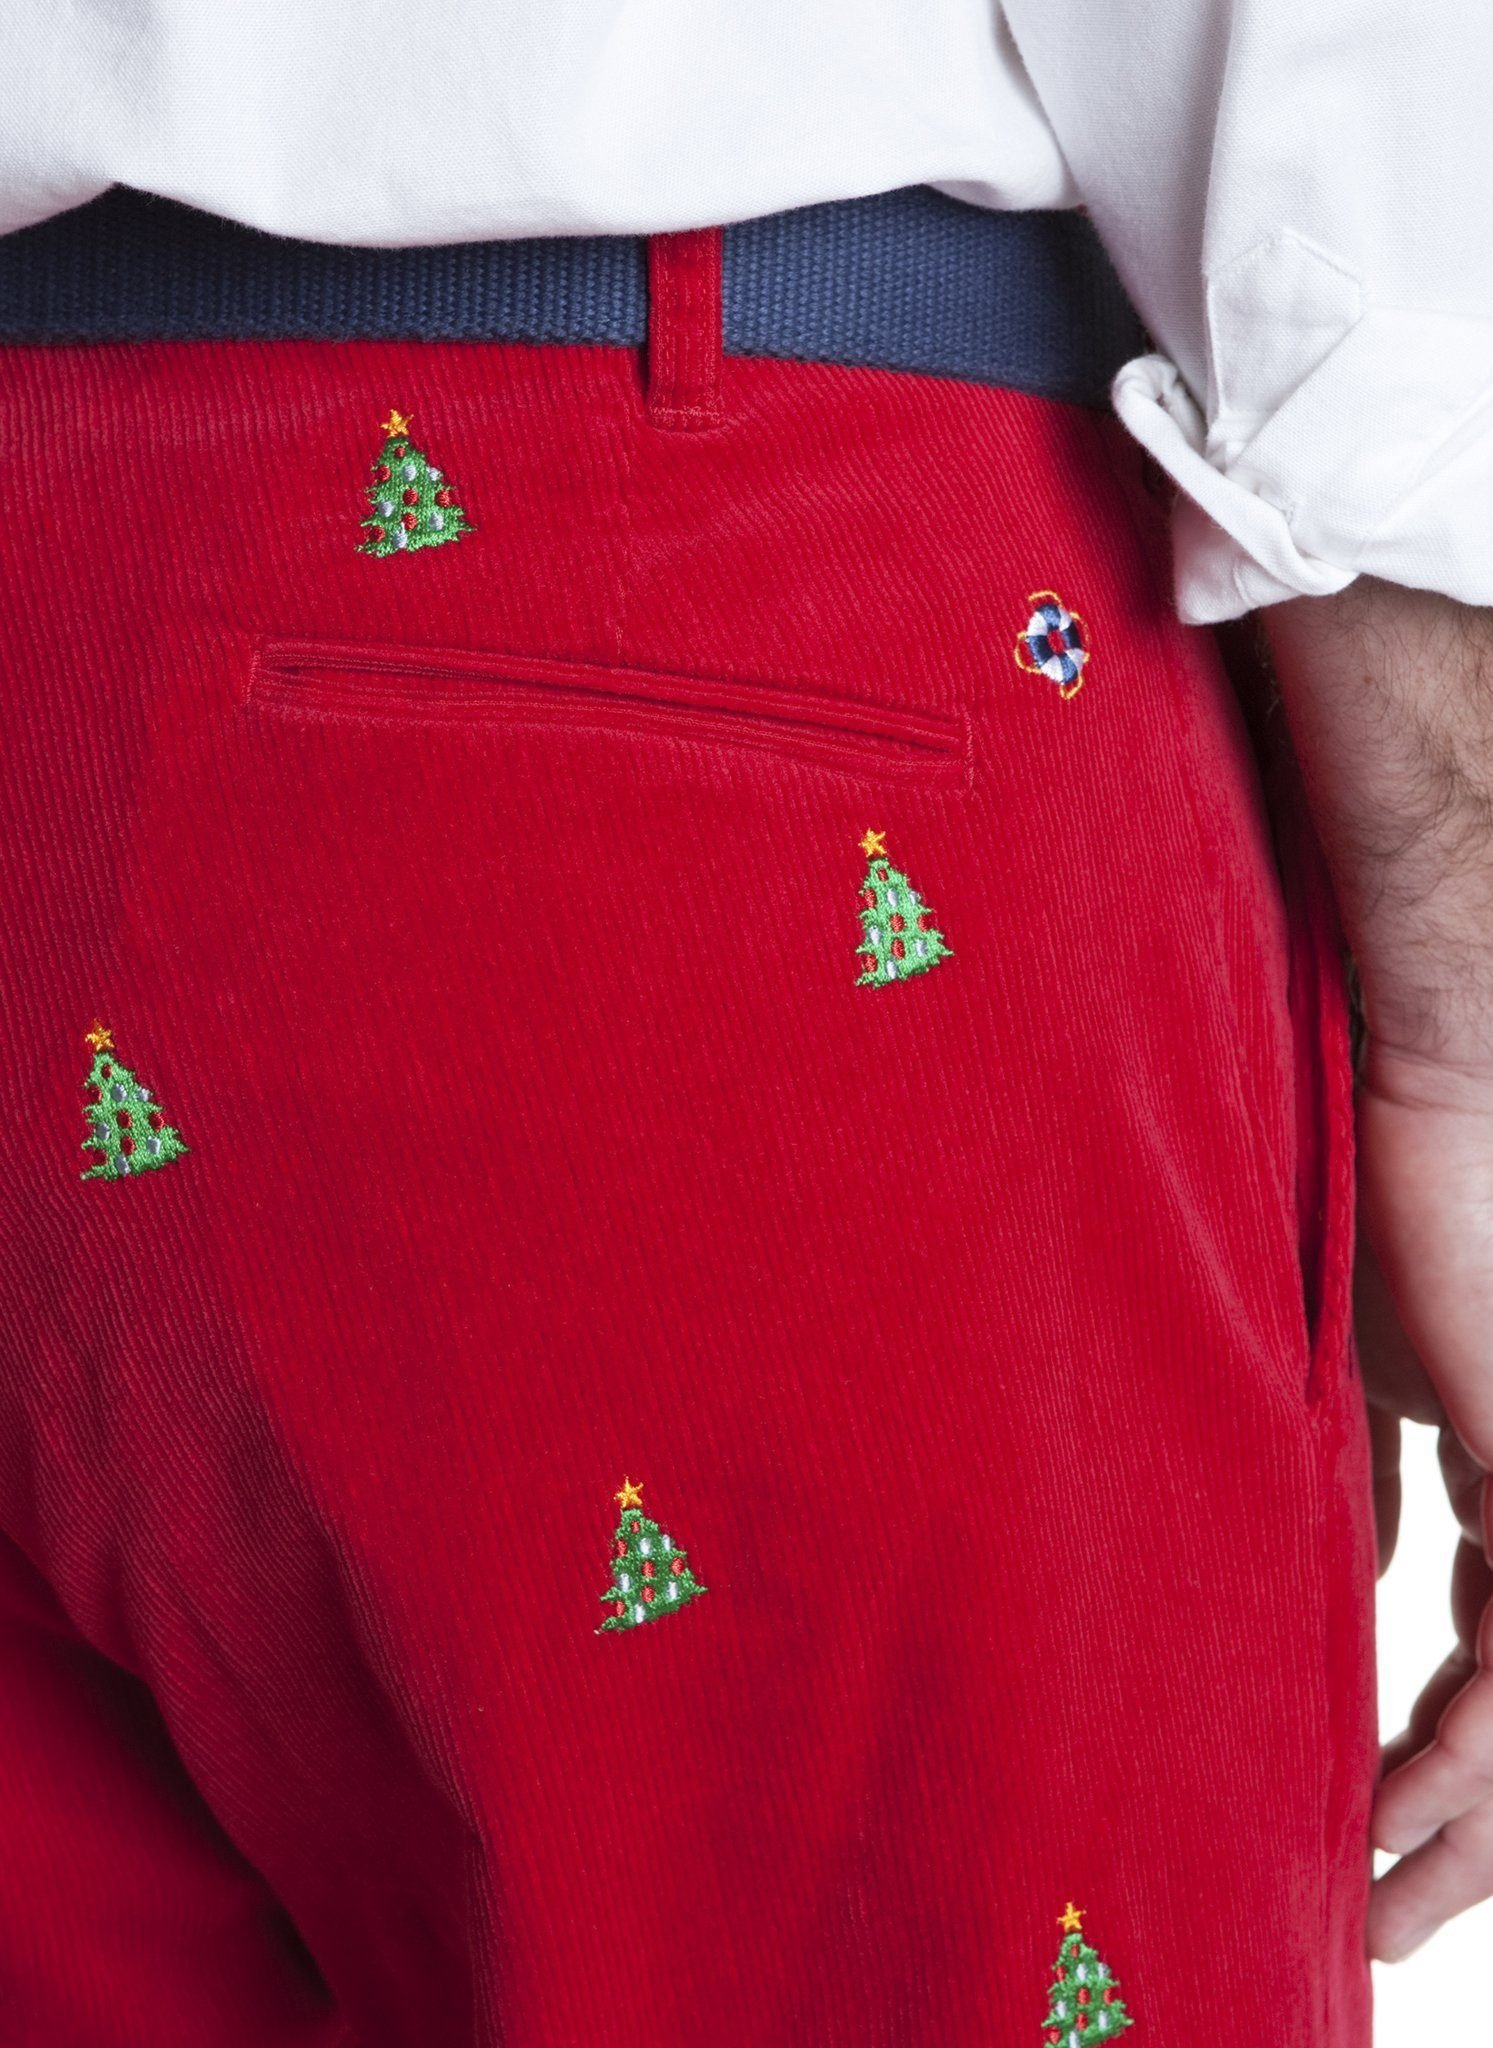 The Fine Swine Men's Castaway Embroidered Holiday Pants 40 Crimson Red With Christmas Trees by THE FINE SWINE and Castaway Clothing (Image #2)